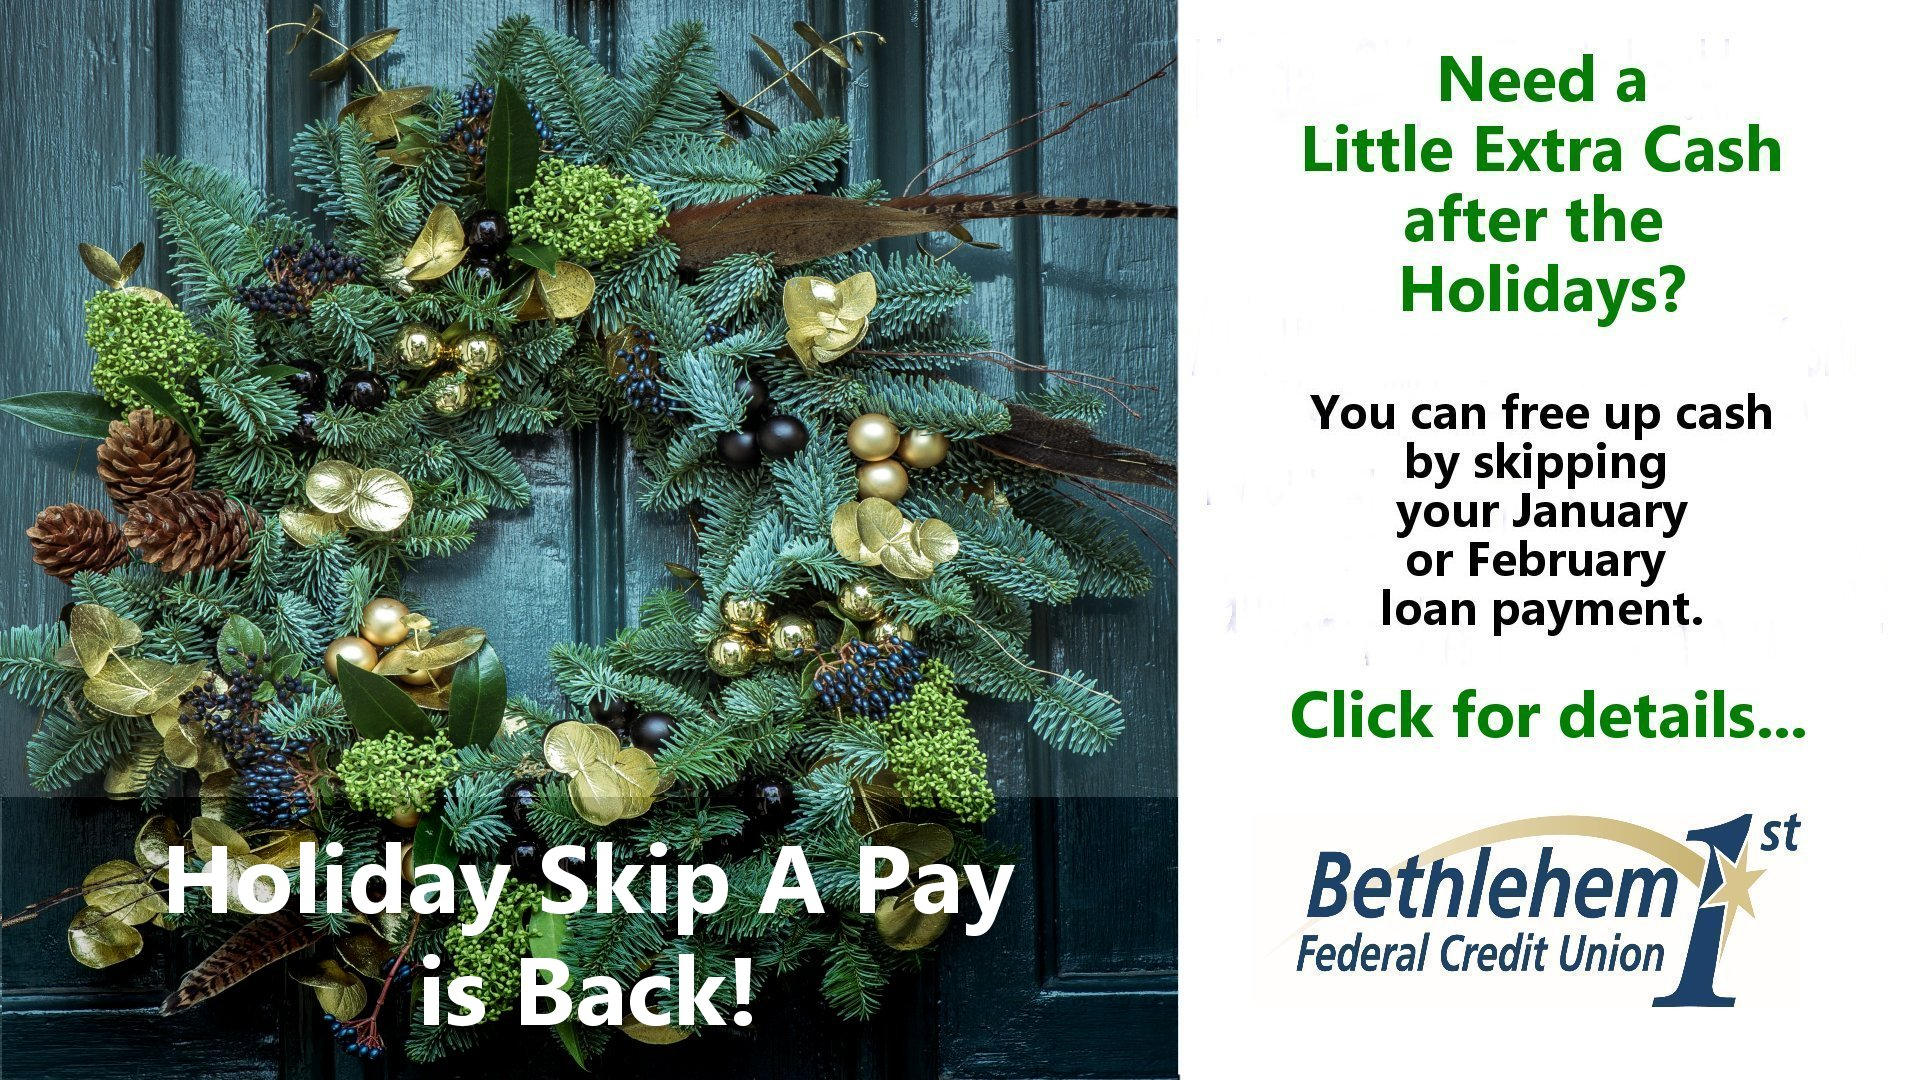 Read more about Holiday Skip A Pay